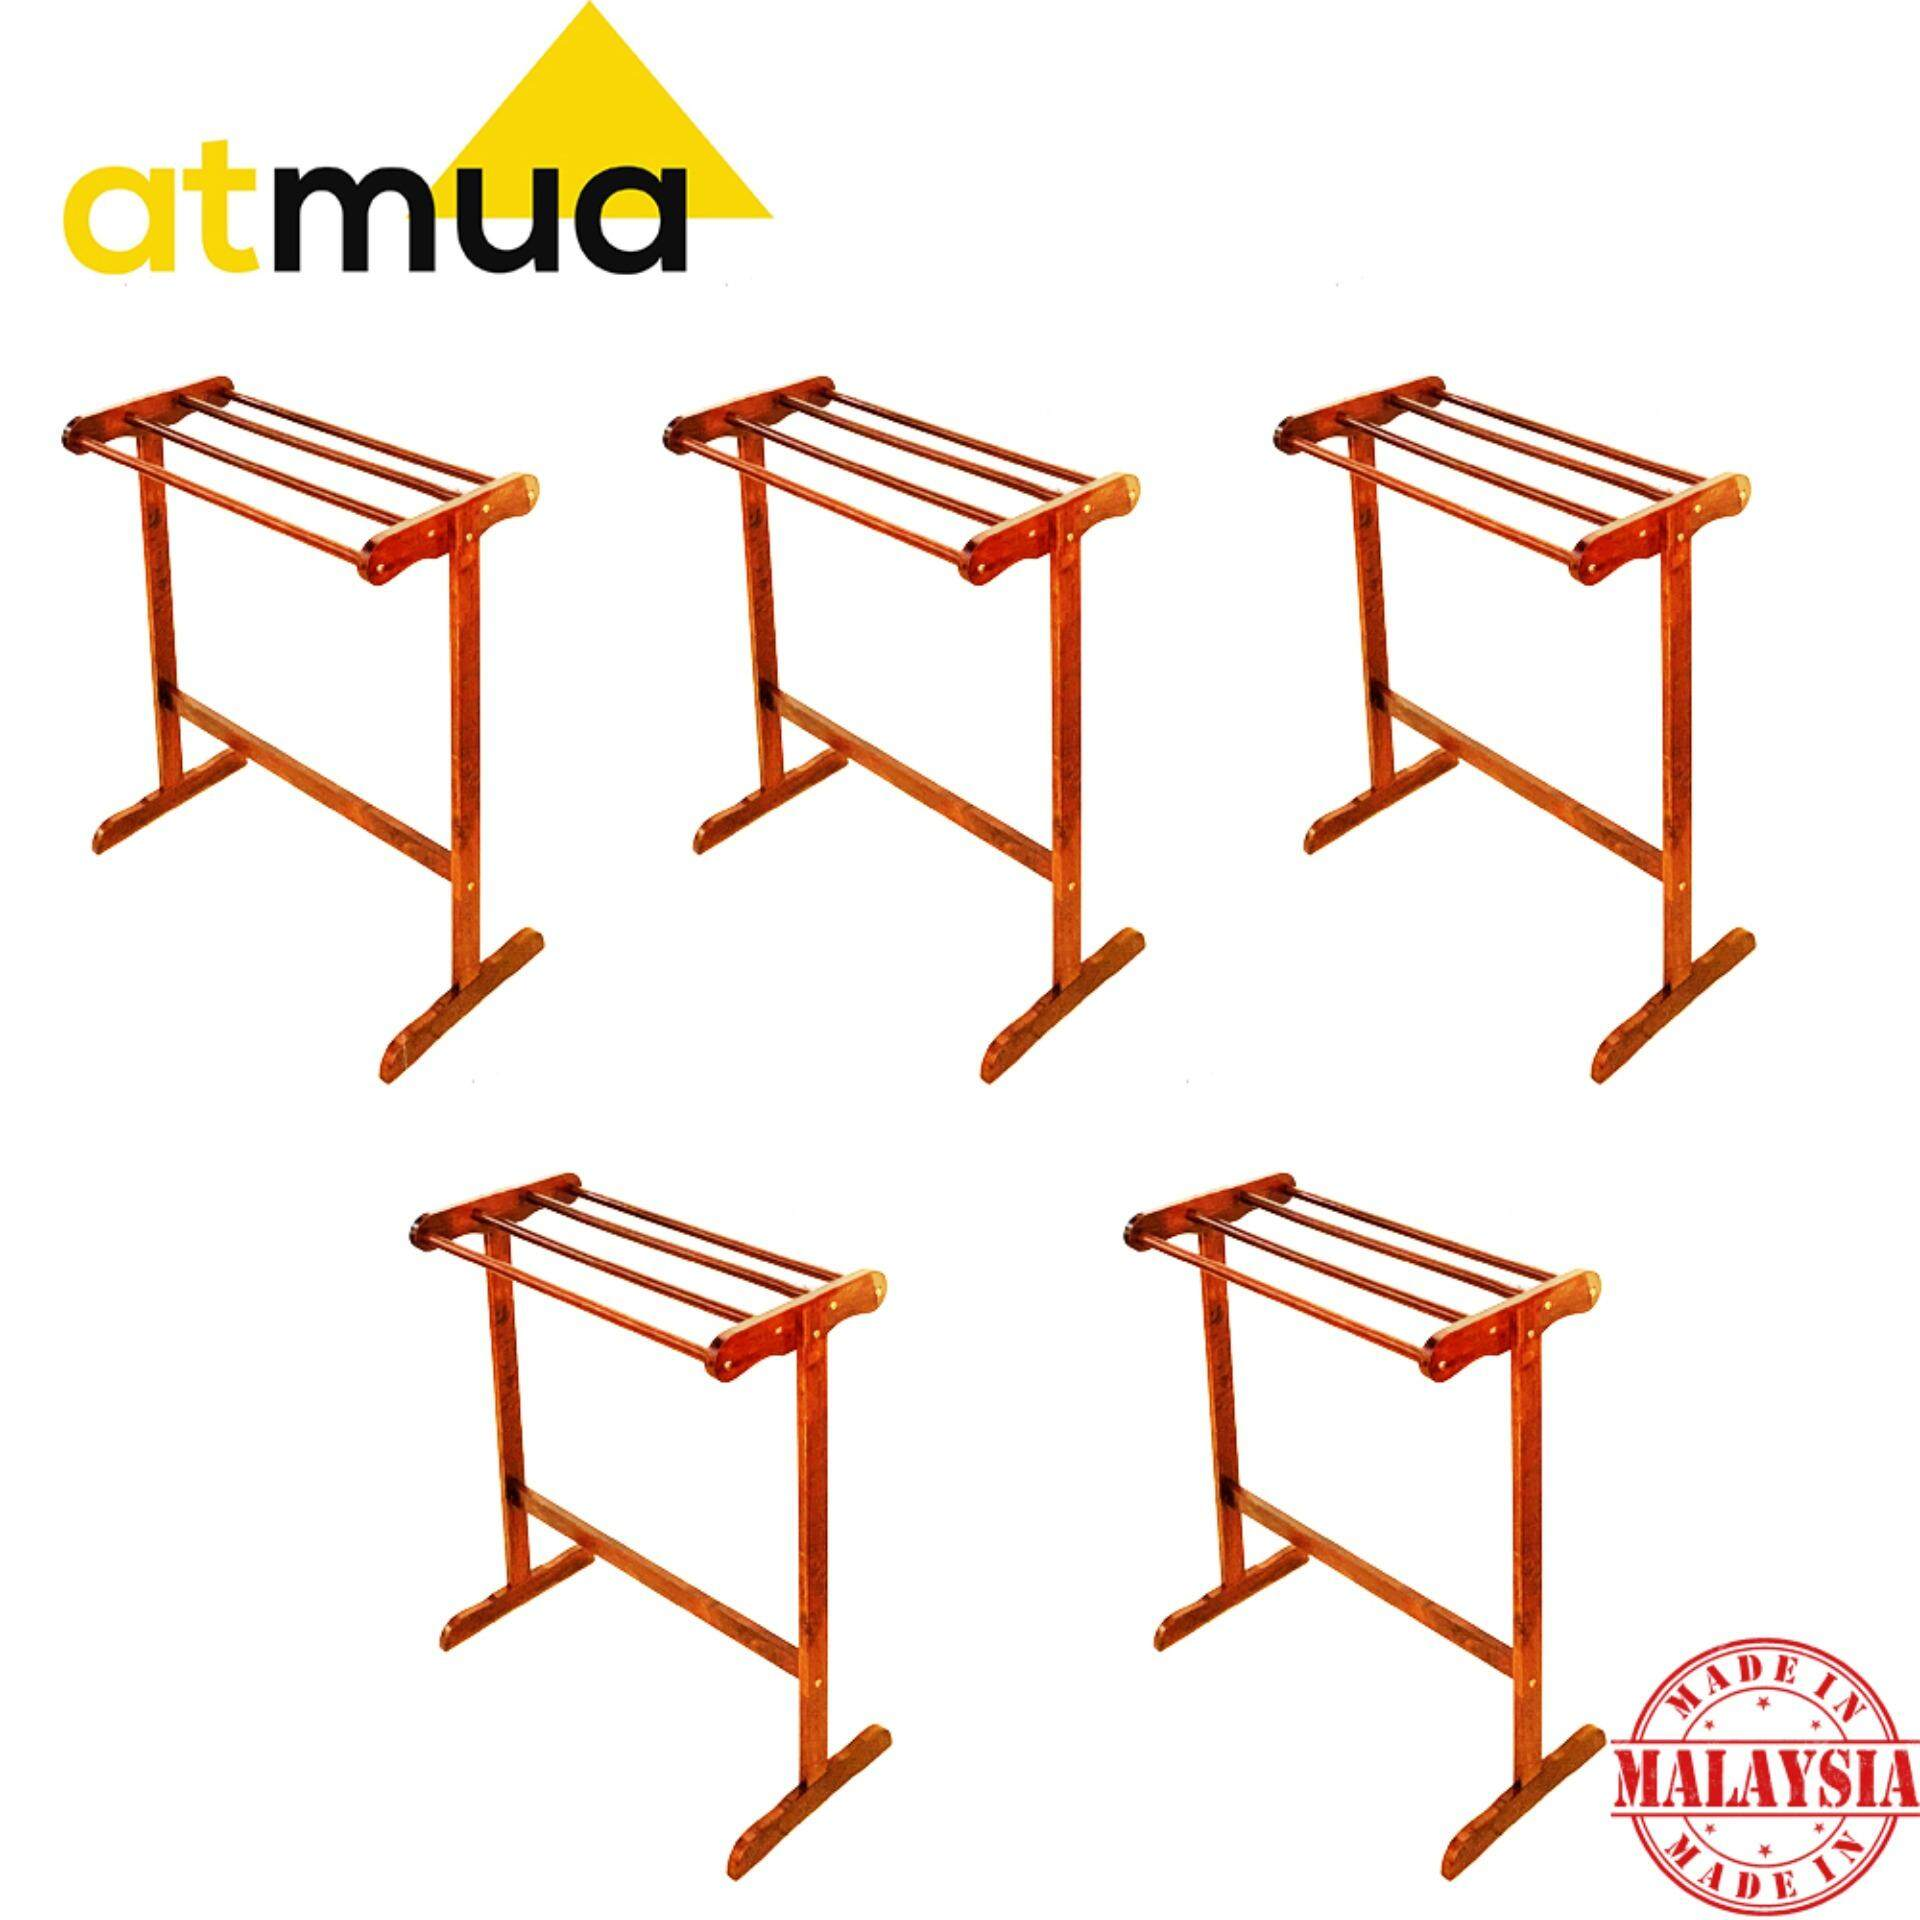 Atmua Habi Small Towel Rack - [Full Solid Wood] *5 Unit*